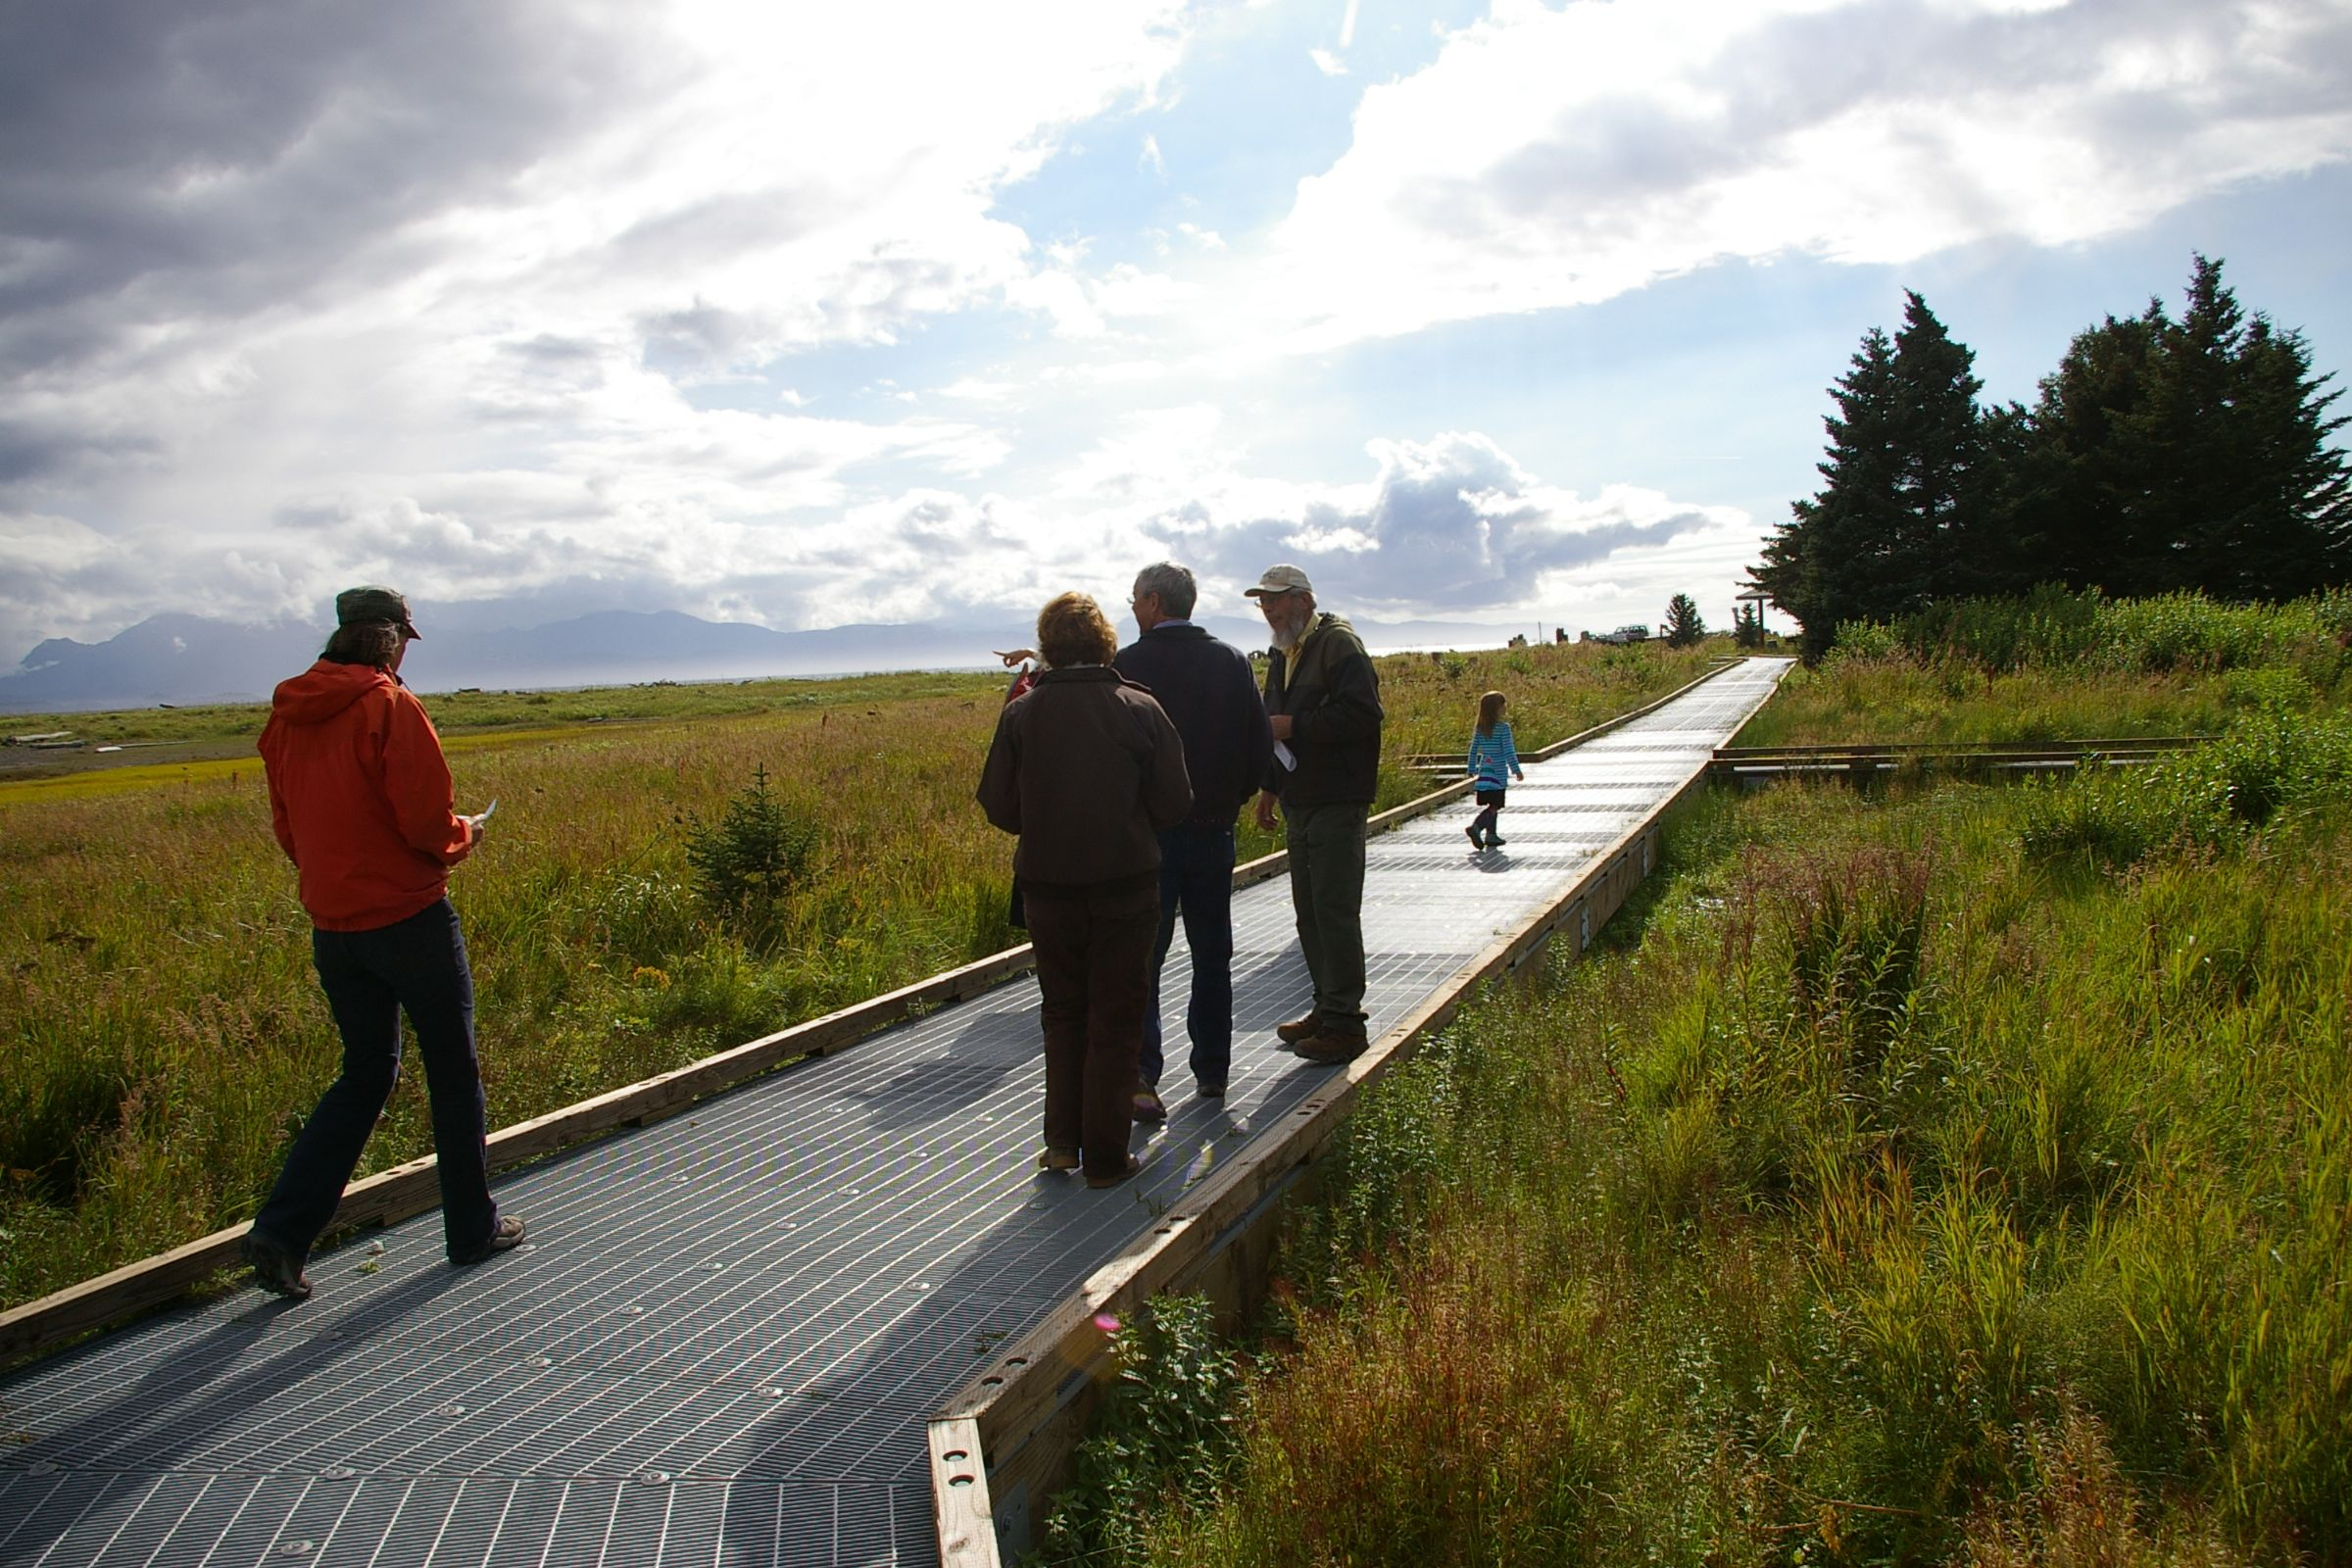 Wendy Erd Led Representatives From Bunnell Street Arts Center, The City Of Homer, Alaska Maritime National Wildlife Refuge, And The Kachemak Bay Research Reserve Along The Islands And Ocean's Beluga Slough Trail, As She Recited Her Site-specific Poems Which Will Be Installed In May Of 2014.